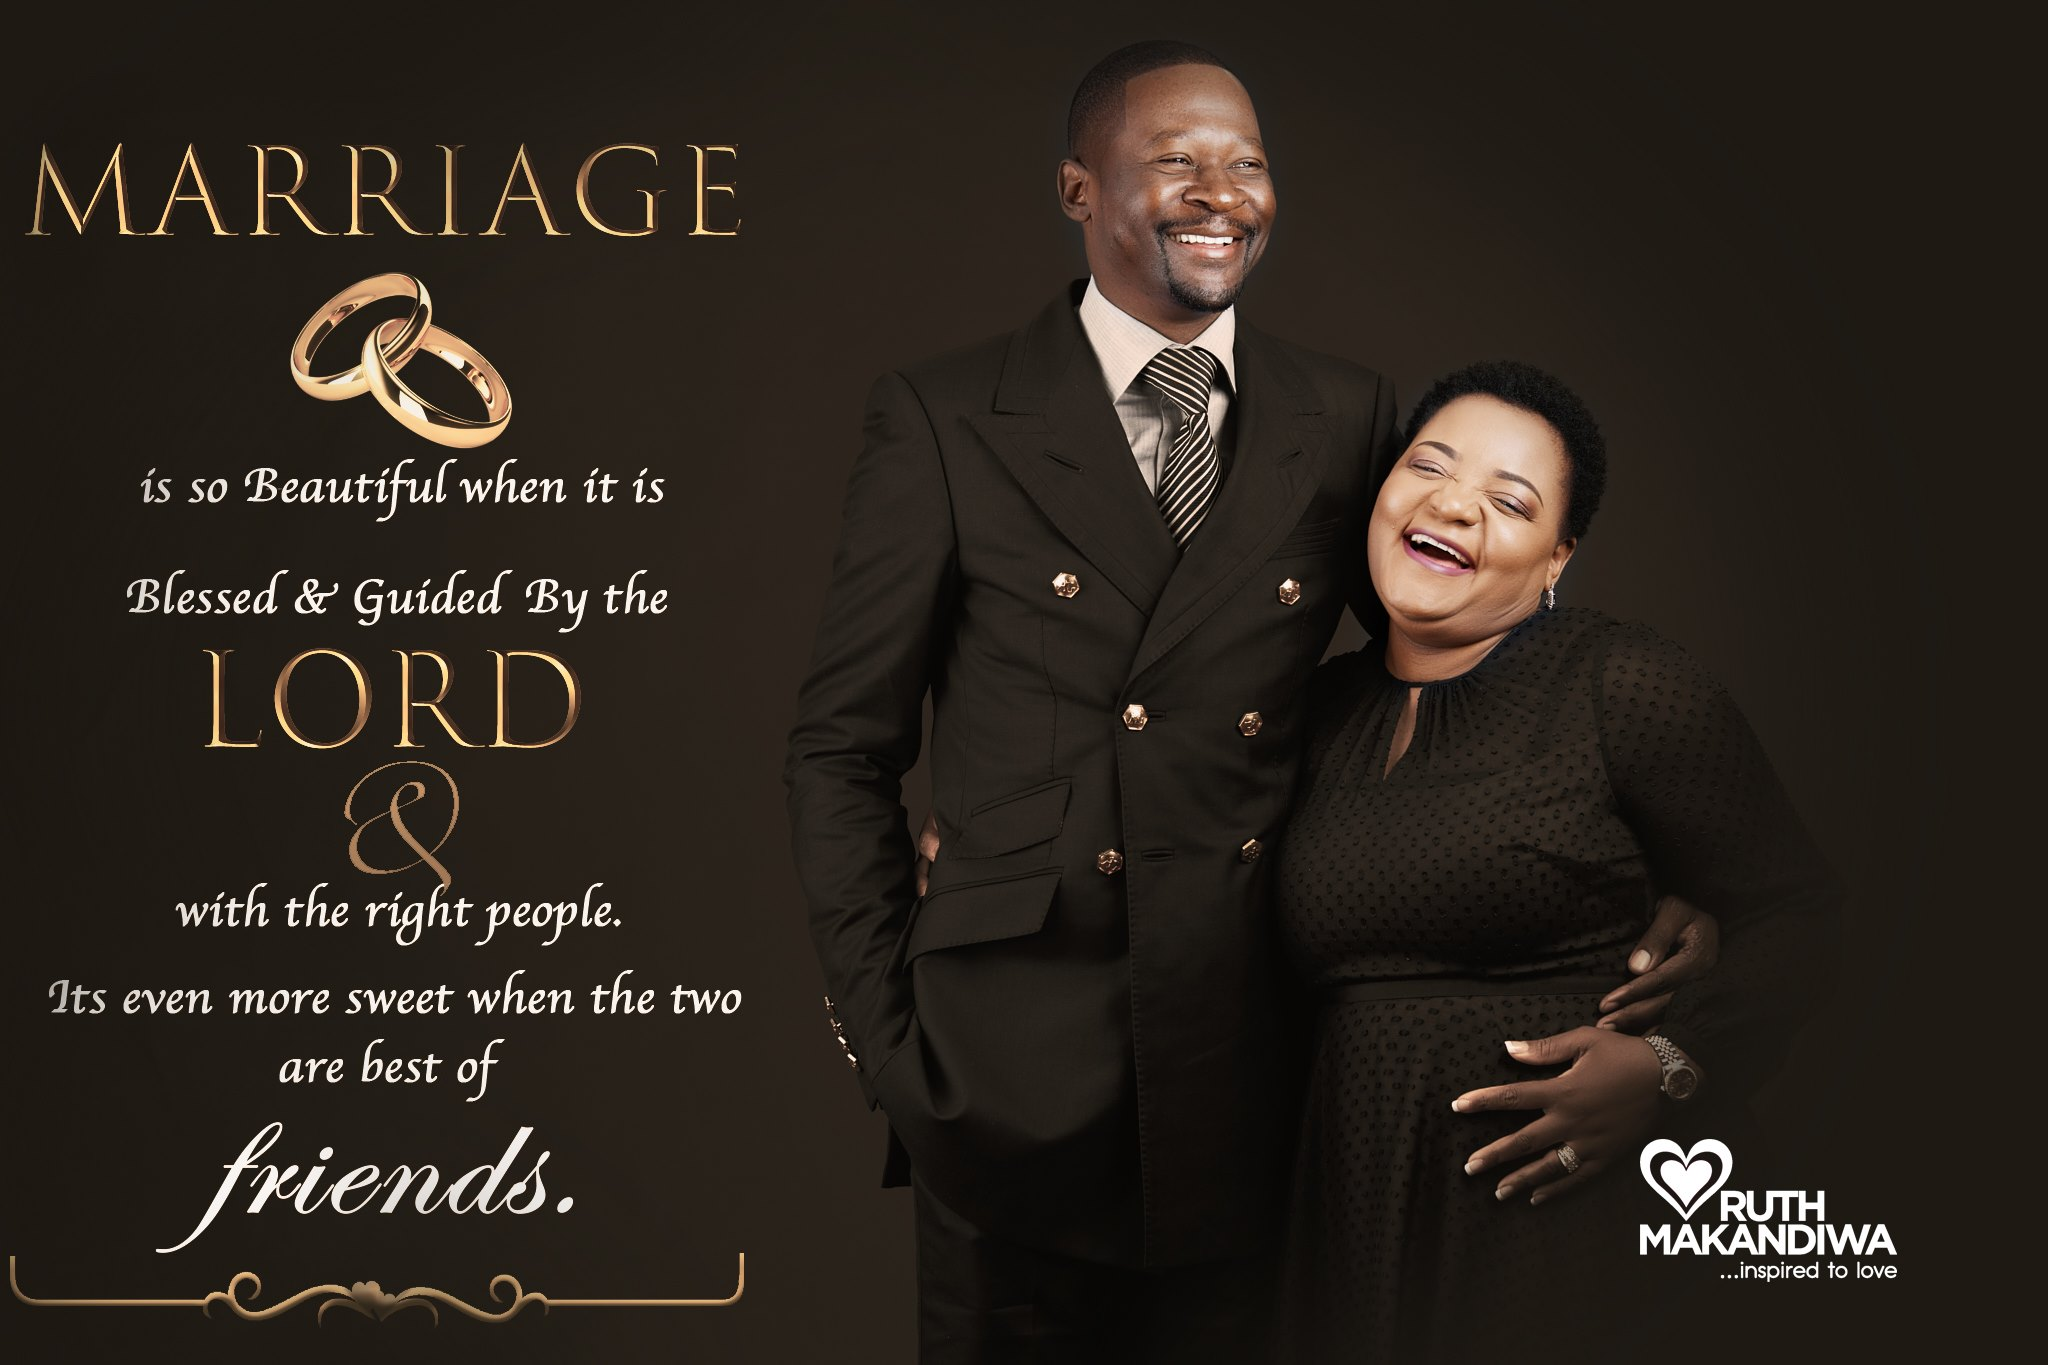 Marriages Redefined and Restored During UFIC Couples' Sessions With Emmanuel Makandiwa